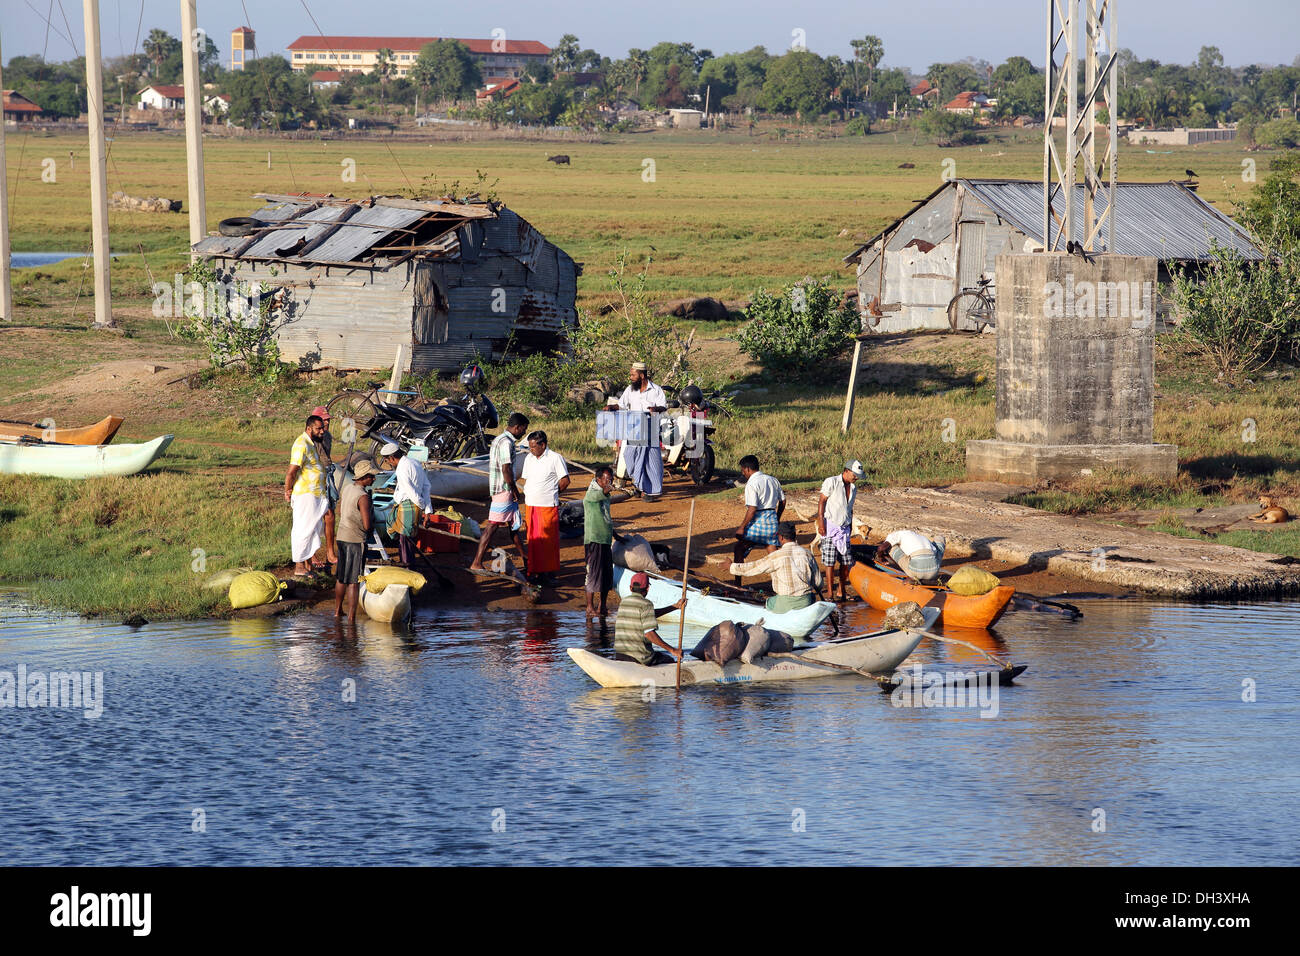 Sri Lankan fishermen returning with their catches in simple outrigger canoes to the shore of Arugam Lagoon. - Stock Image